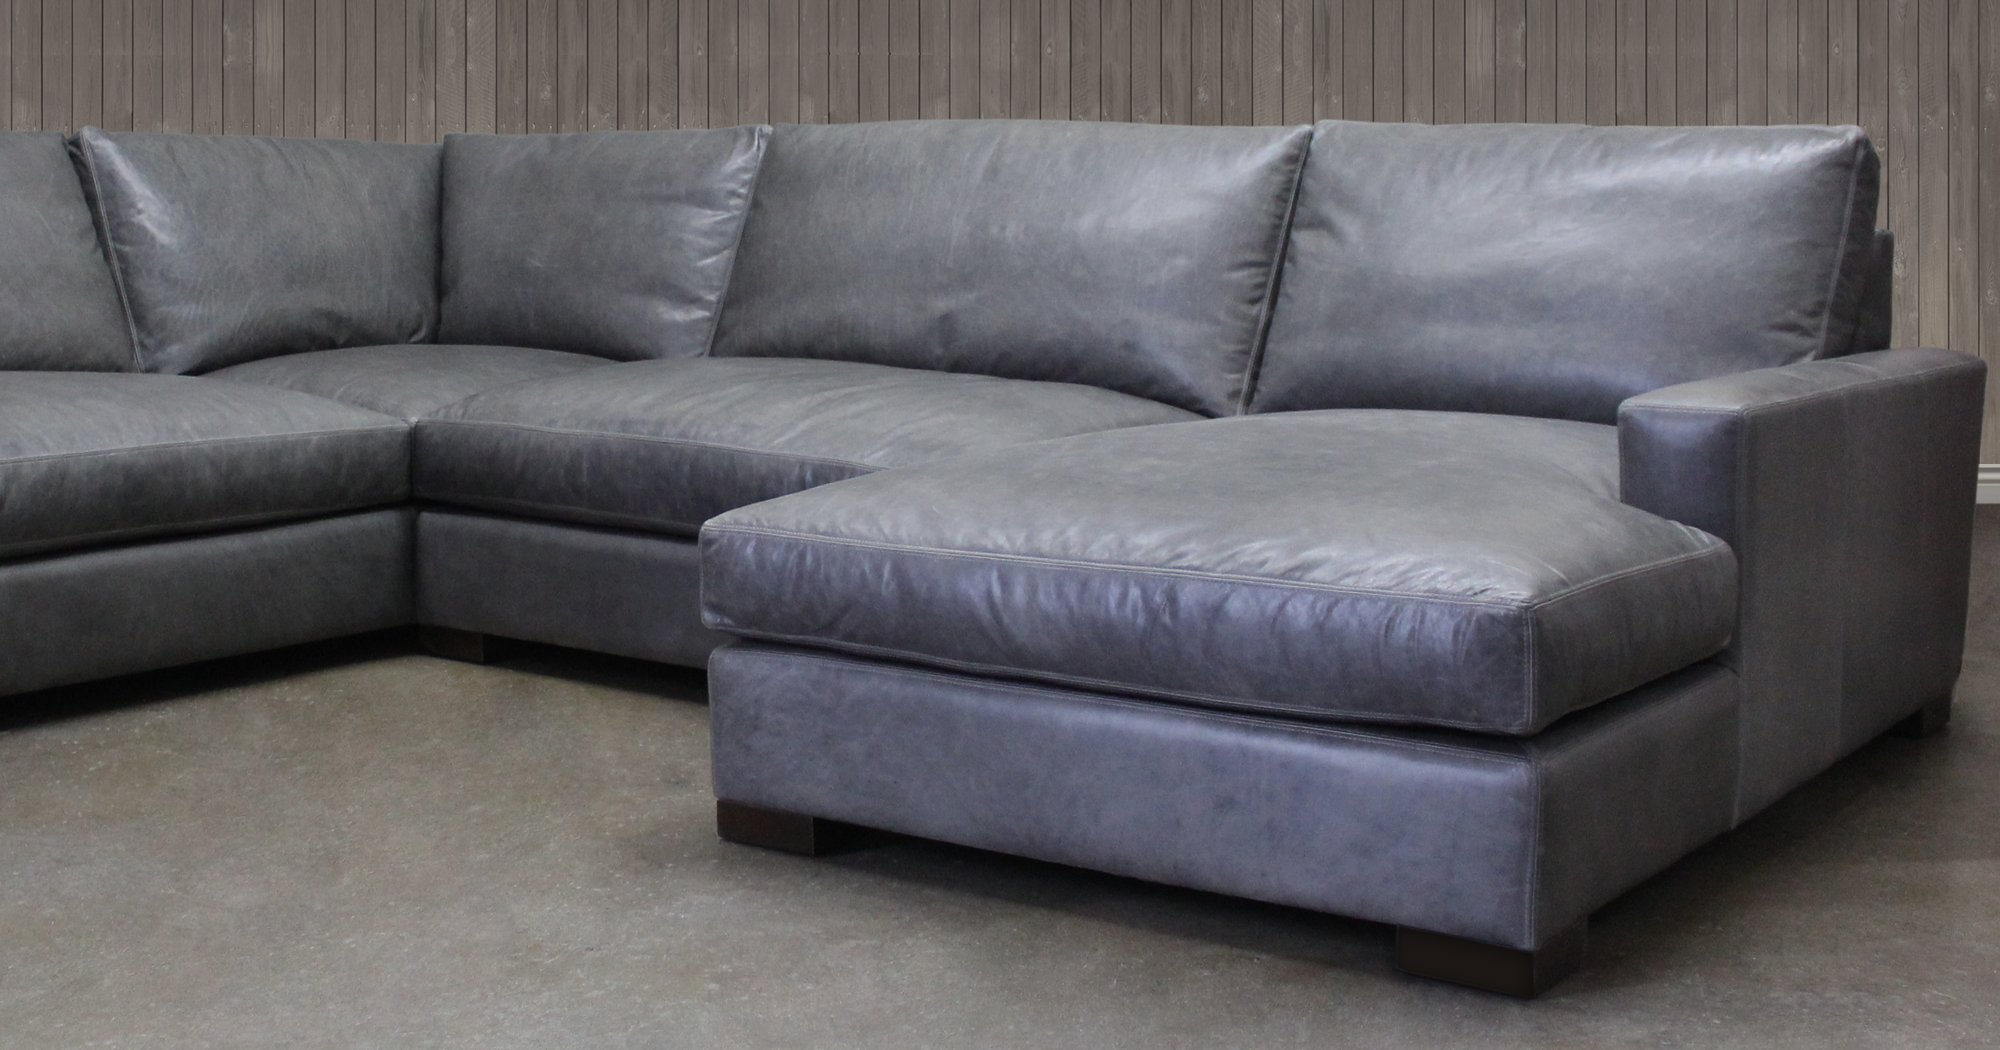 American made leather furniture leather sofas leather for Arizona leather sectional sofa with chaise